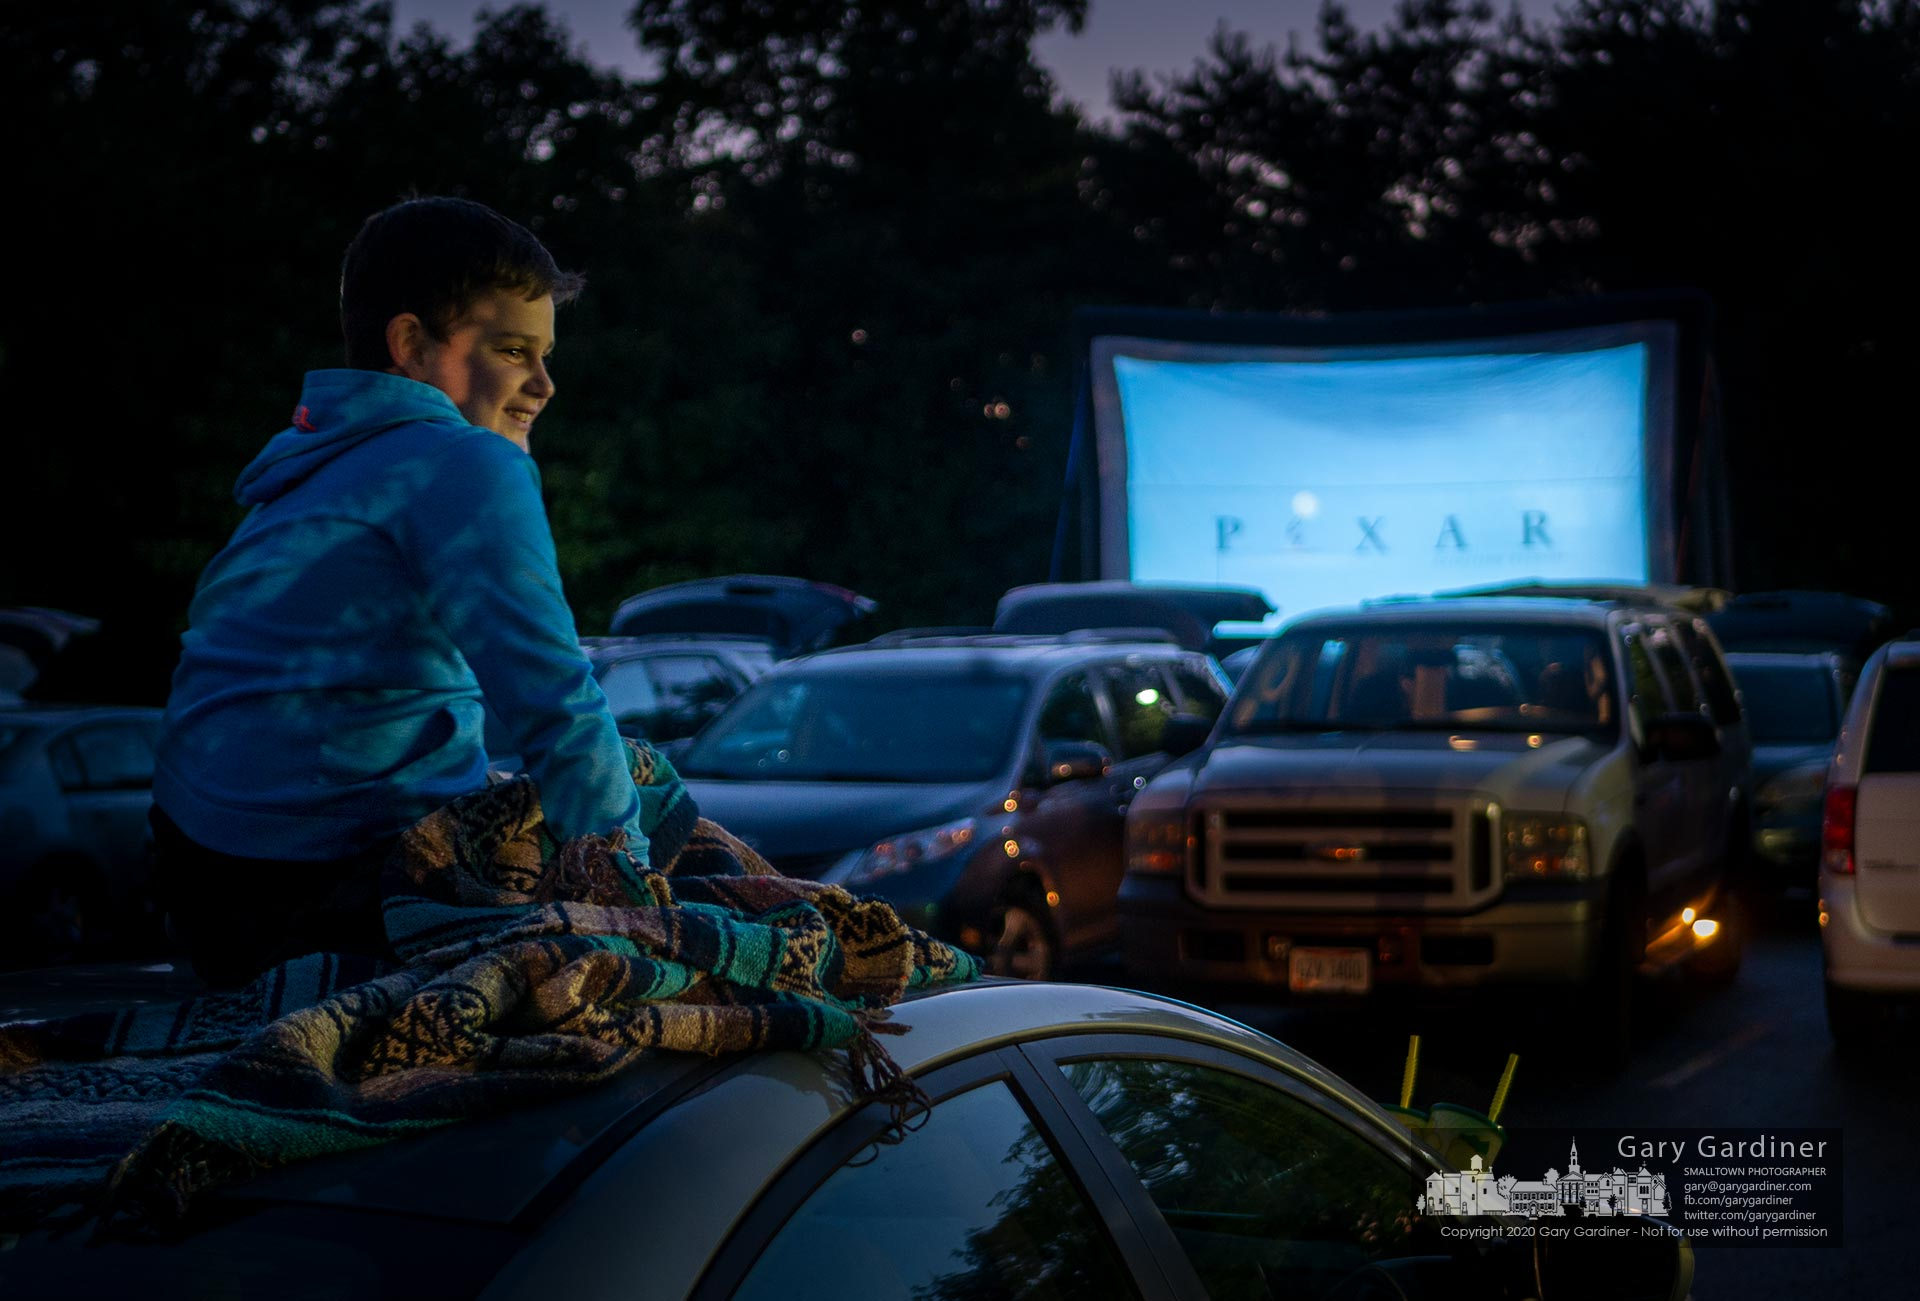 """A boy sitting on the roof of his family car smiles at the opening credits for """"Toy Story"""" on an outdoor screen at the Westerville Fair Food Fest on its first day. My Final Photo for Sept. 18, 2020."""